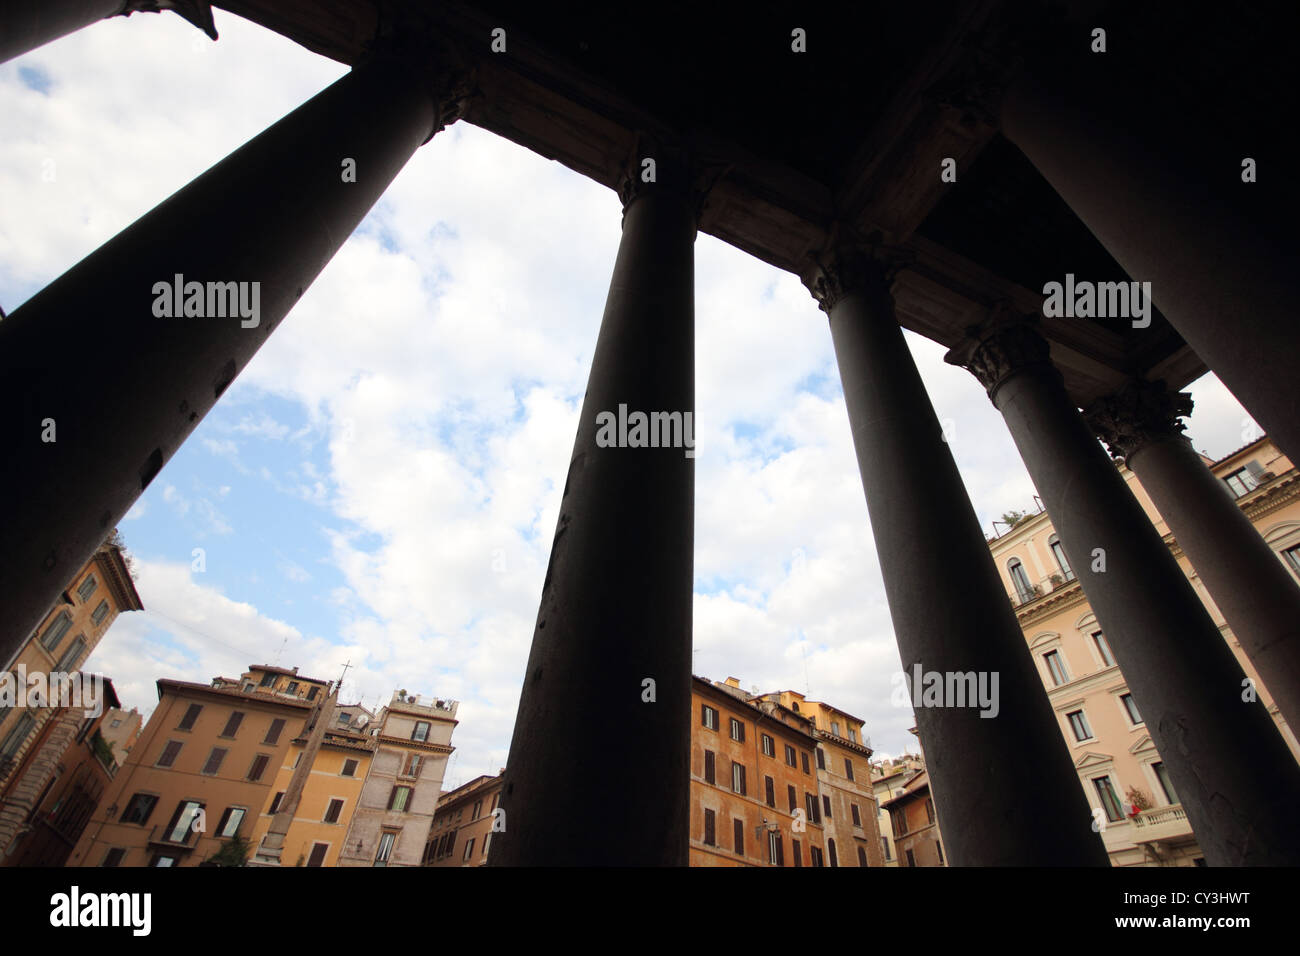 a wideangle shot of the columns of the beautiful Pantheon, Historical, Italy, travel, Roma, Rome, photoarkive - Stock Image